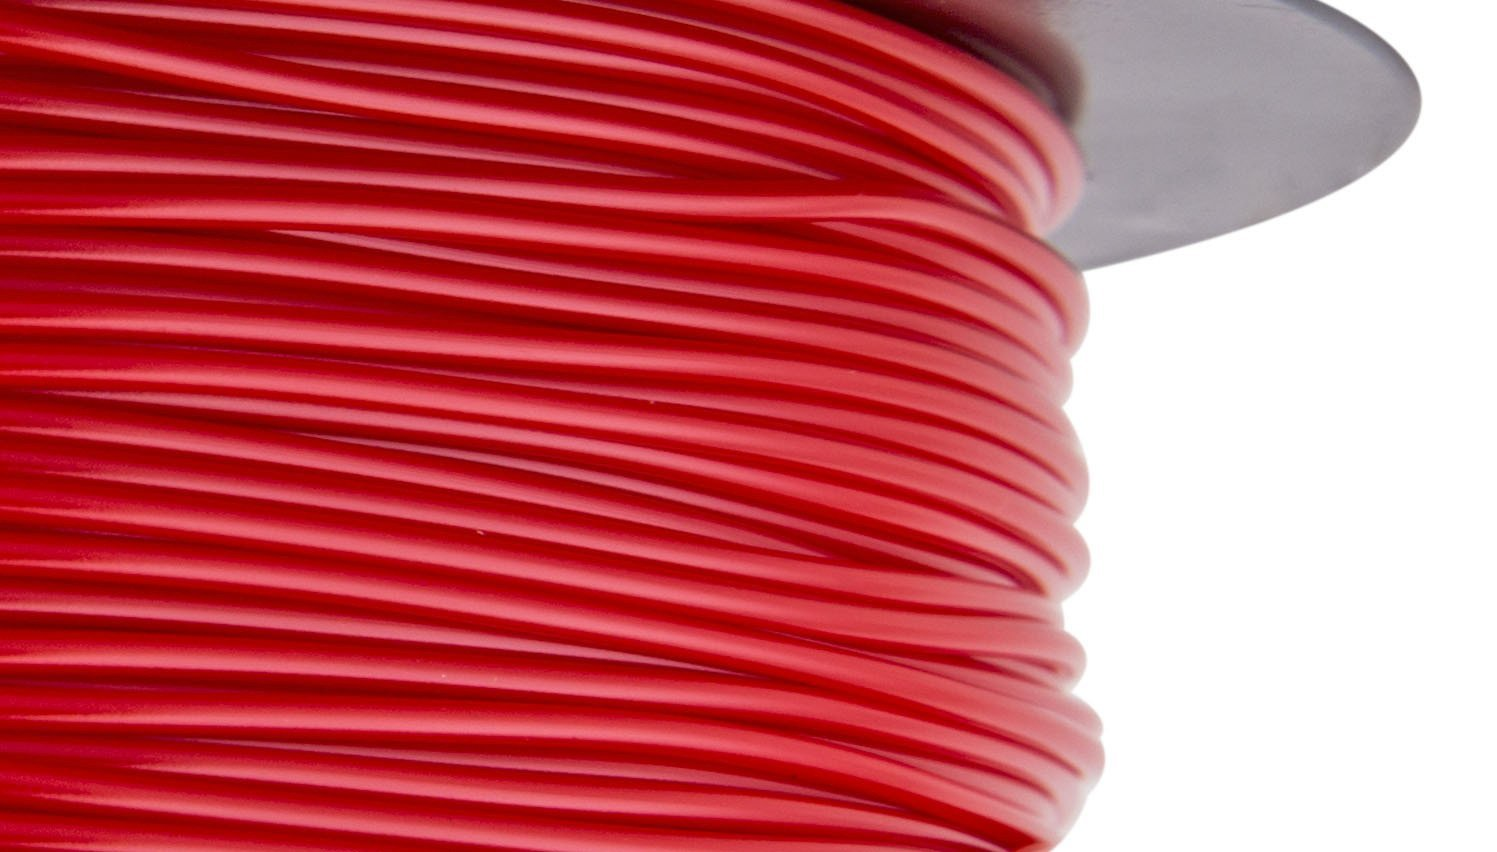 HATCHBOX PLA 3D Printer Filament 1 kg Spool Dimensional Accuracy +//- 0.03 mm Red 3D PLA-1KG1.75-RED 1.75 mm